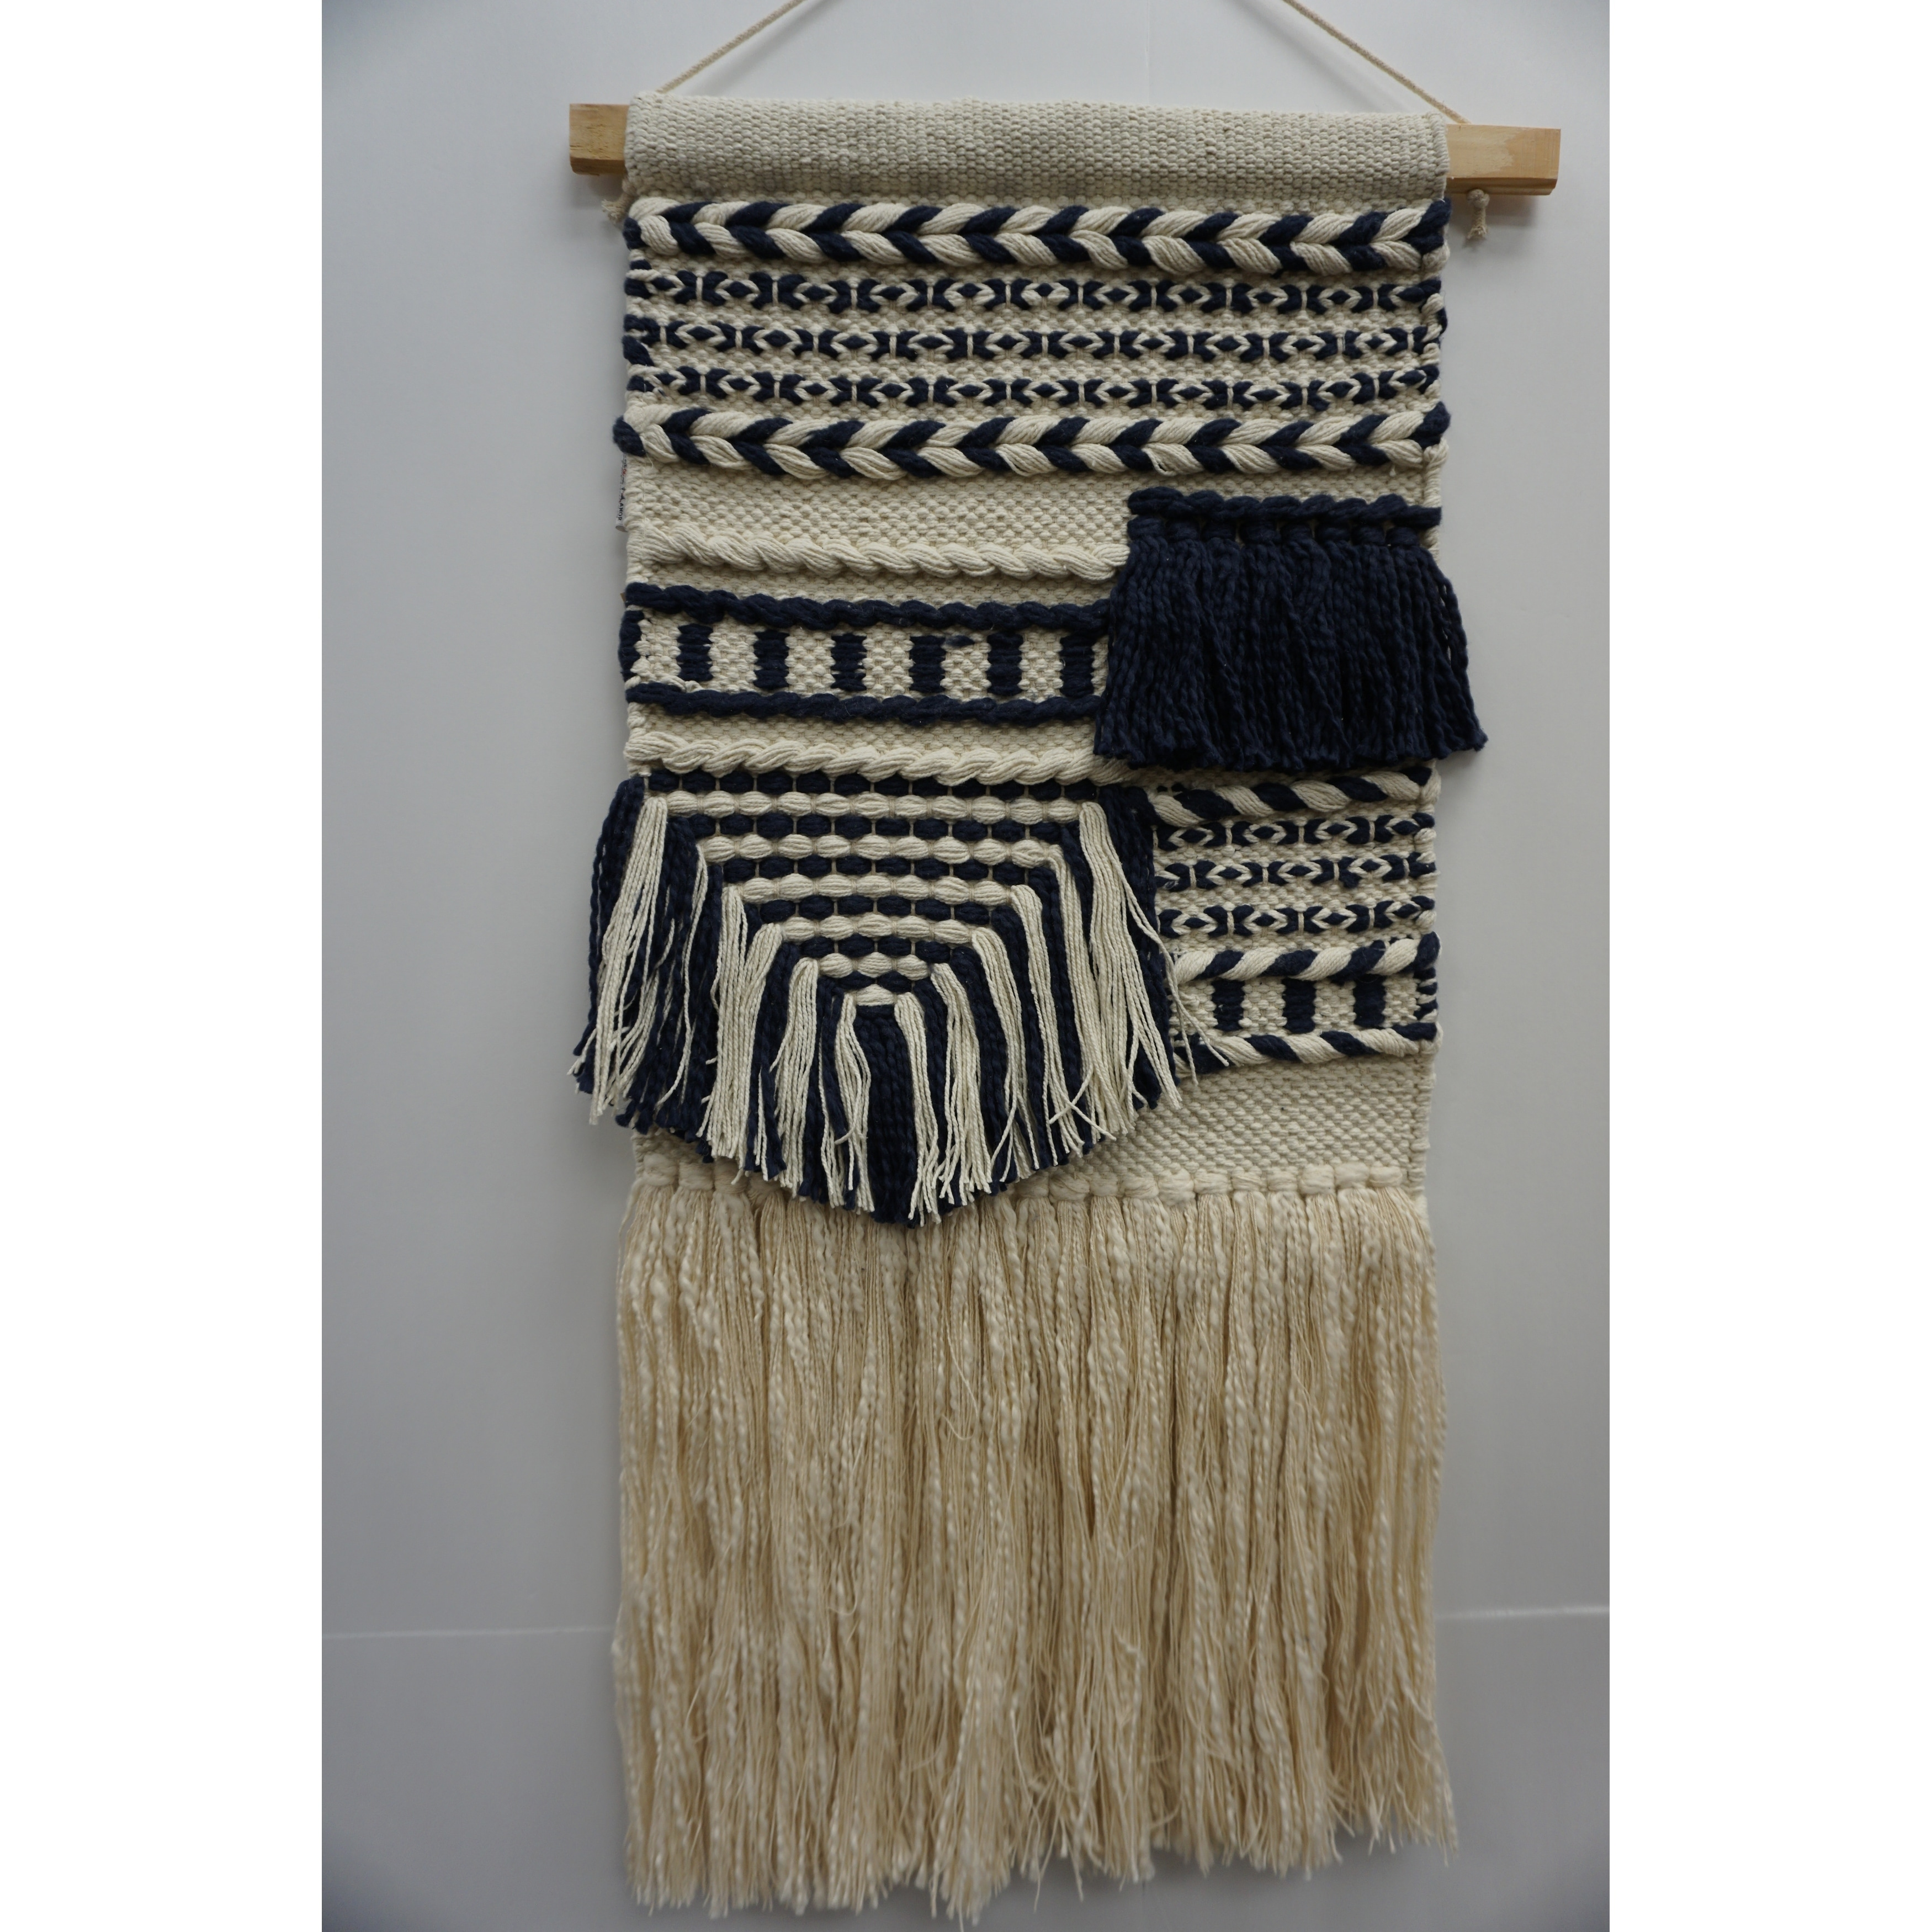 Macrame Handmade Wall Hanging Tapestry Tapestries Accueil Décoration Murale Noir